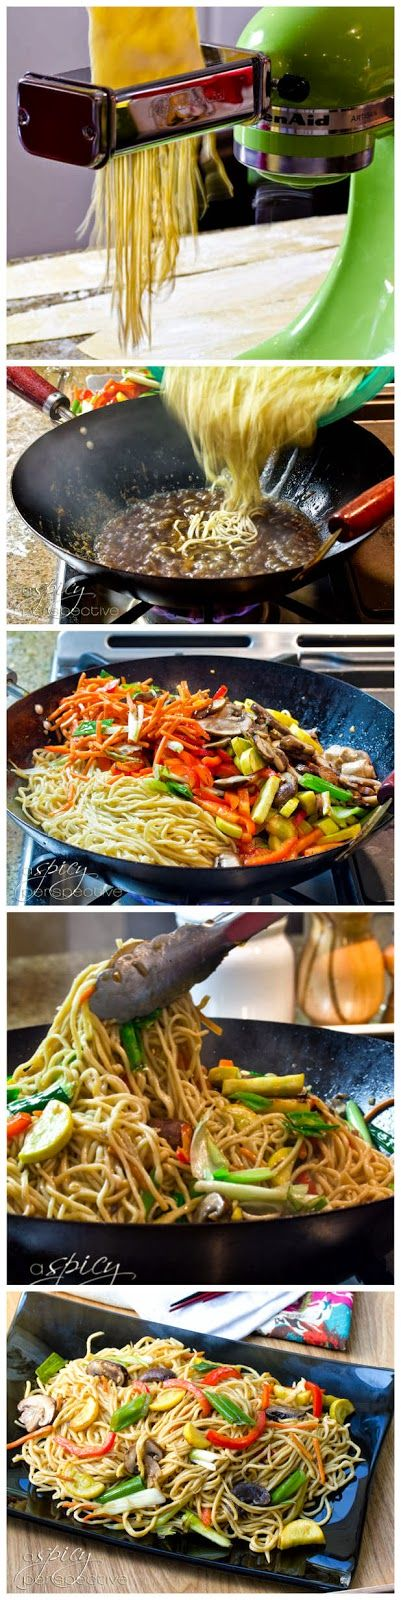 Vegetable Lo Mein Recipe with Homemade Noodles - Askmefood